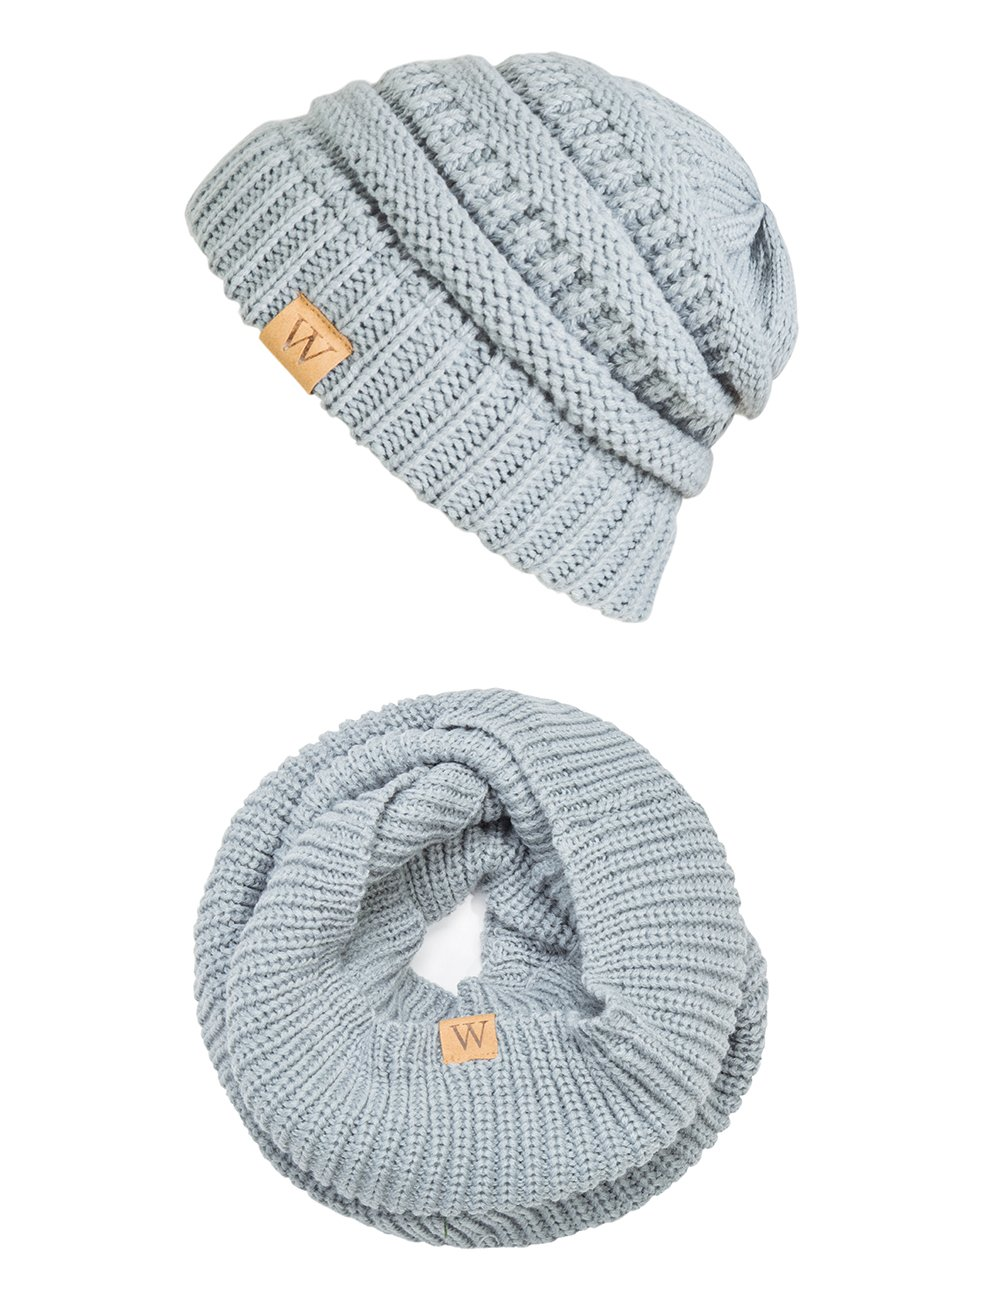 EVRFELAN Winter Warm Knitted Infinity Scarf and Beanie Hat Set (Gray)